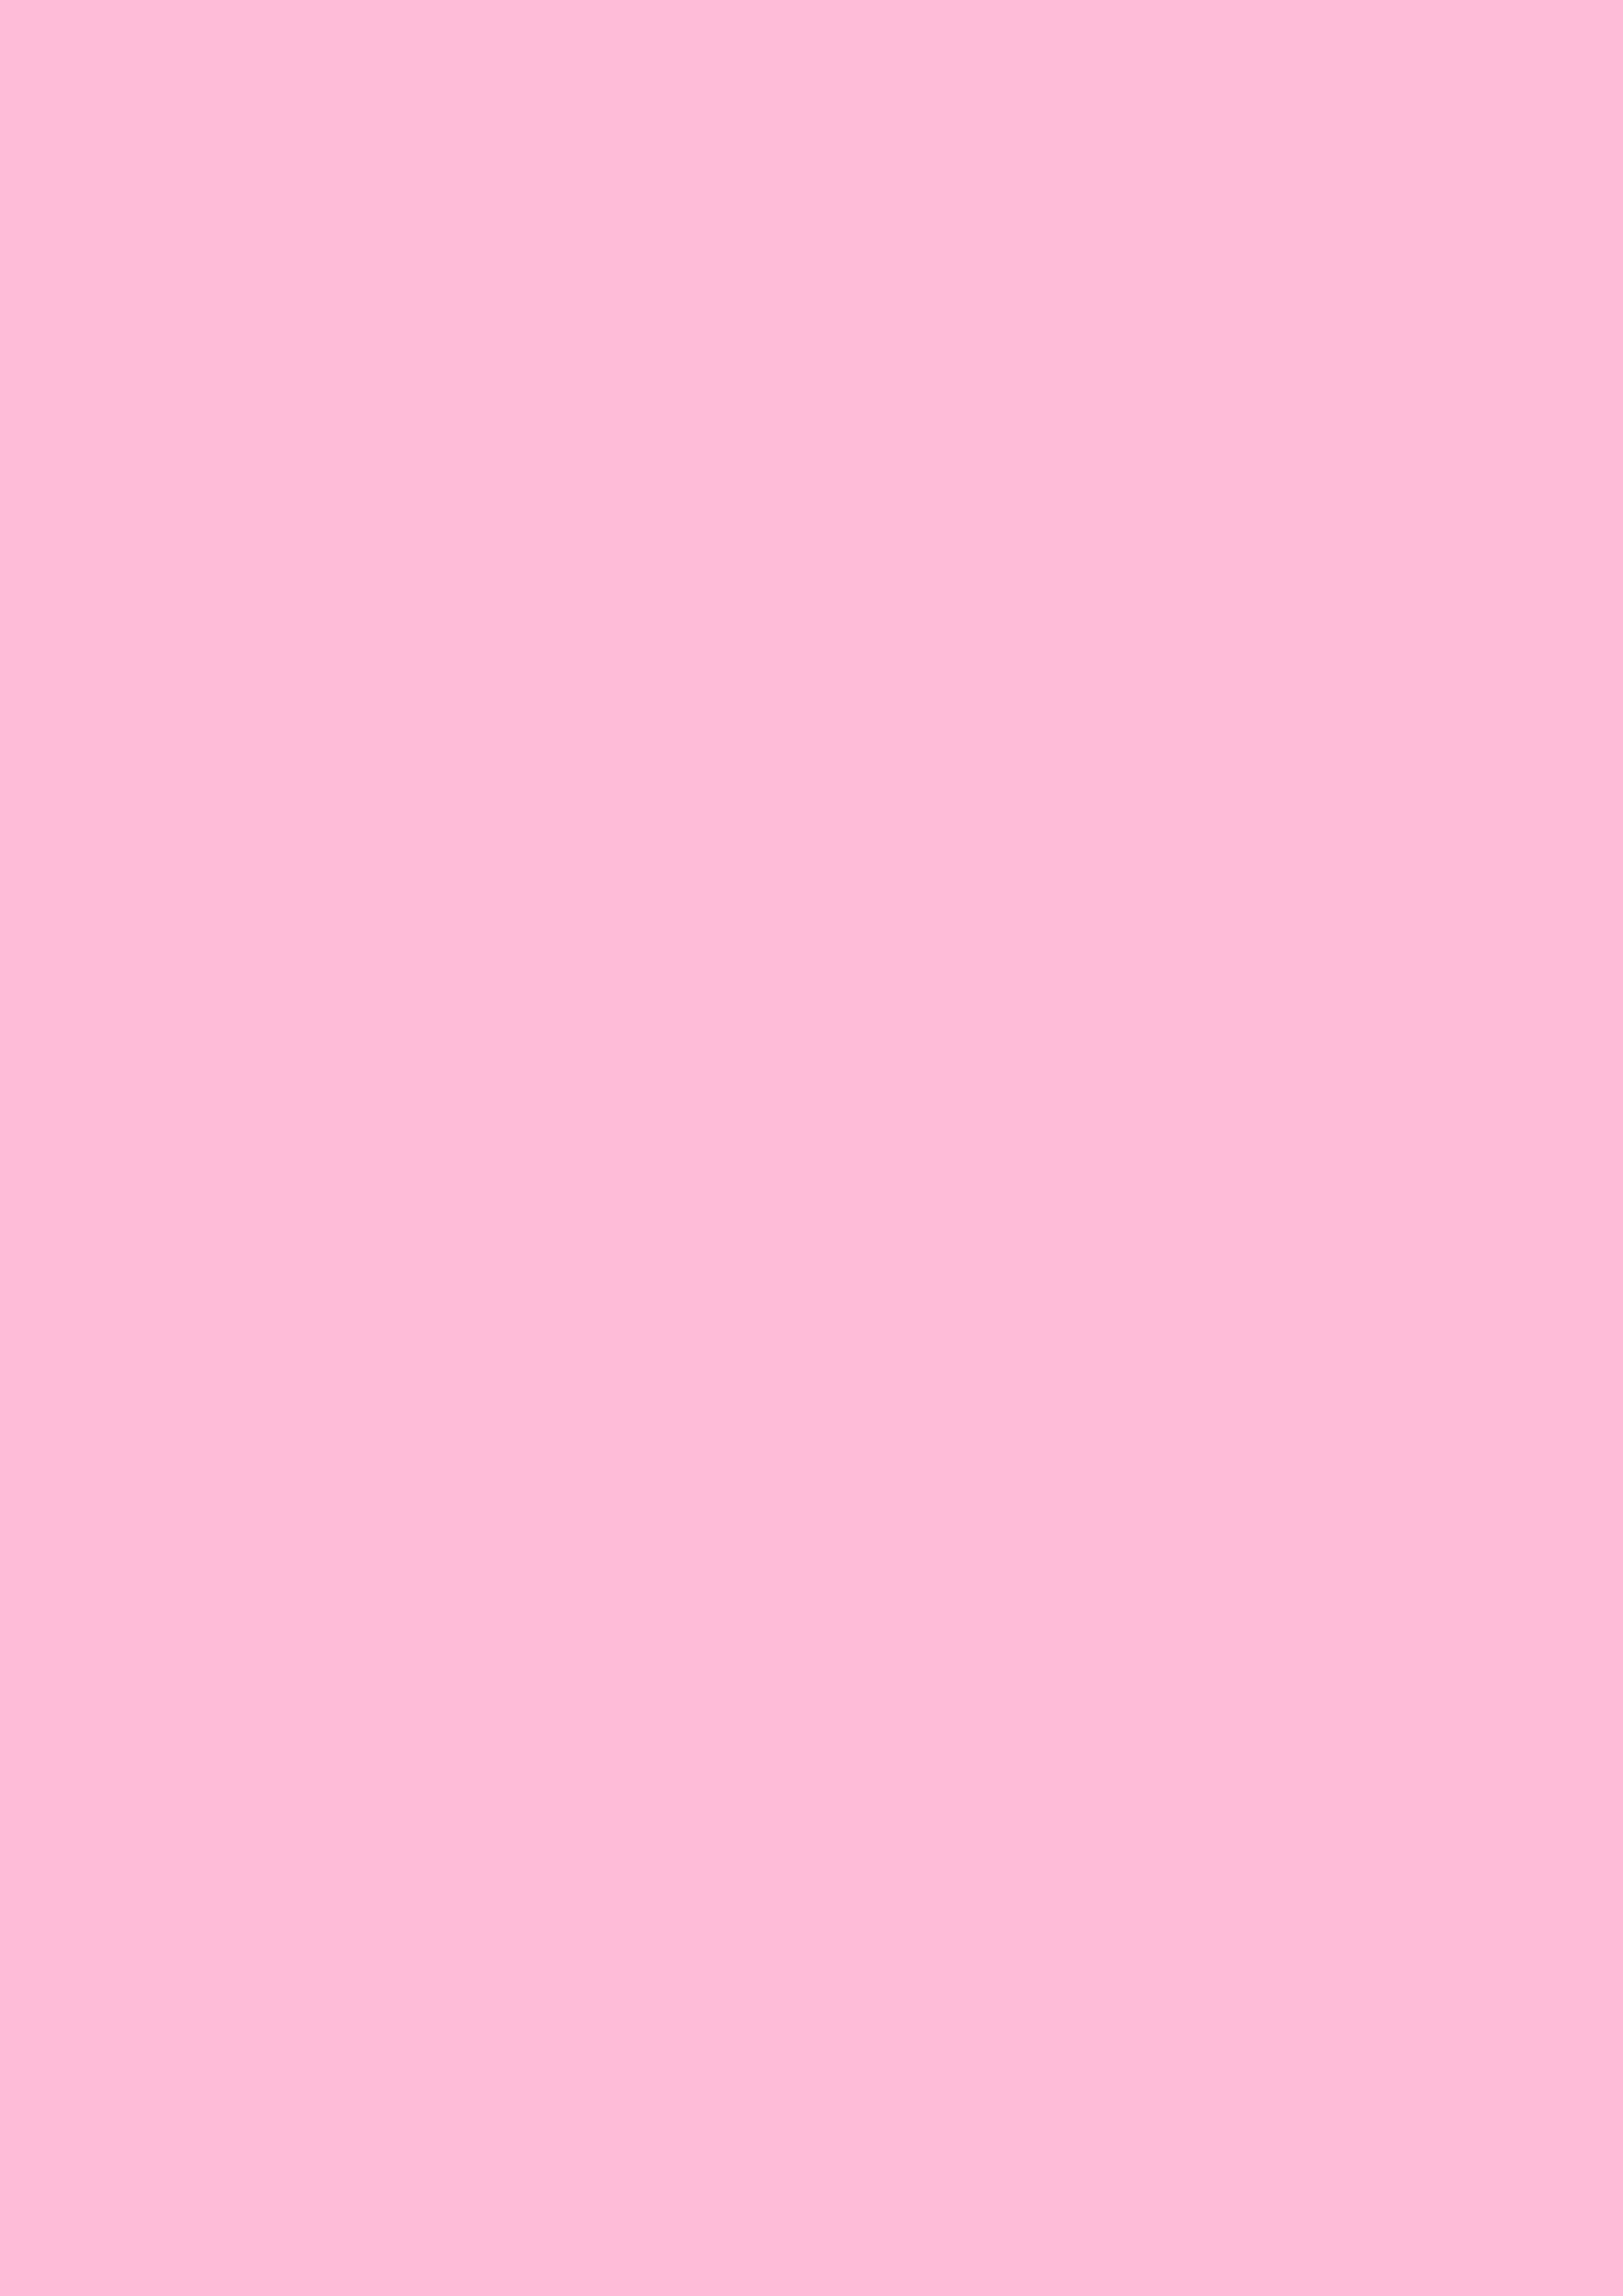 2480x3508 Cotton Candy Solid Color Background